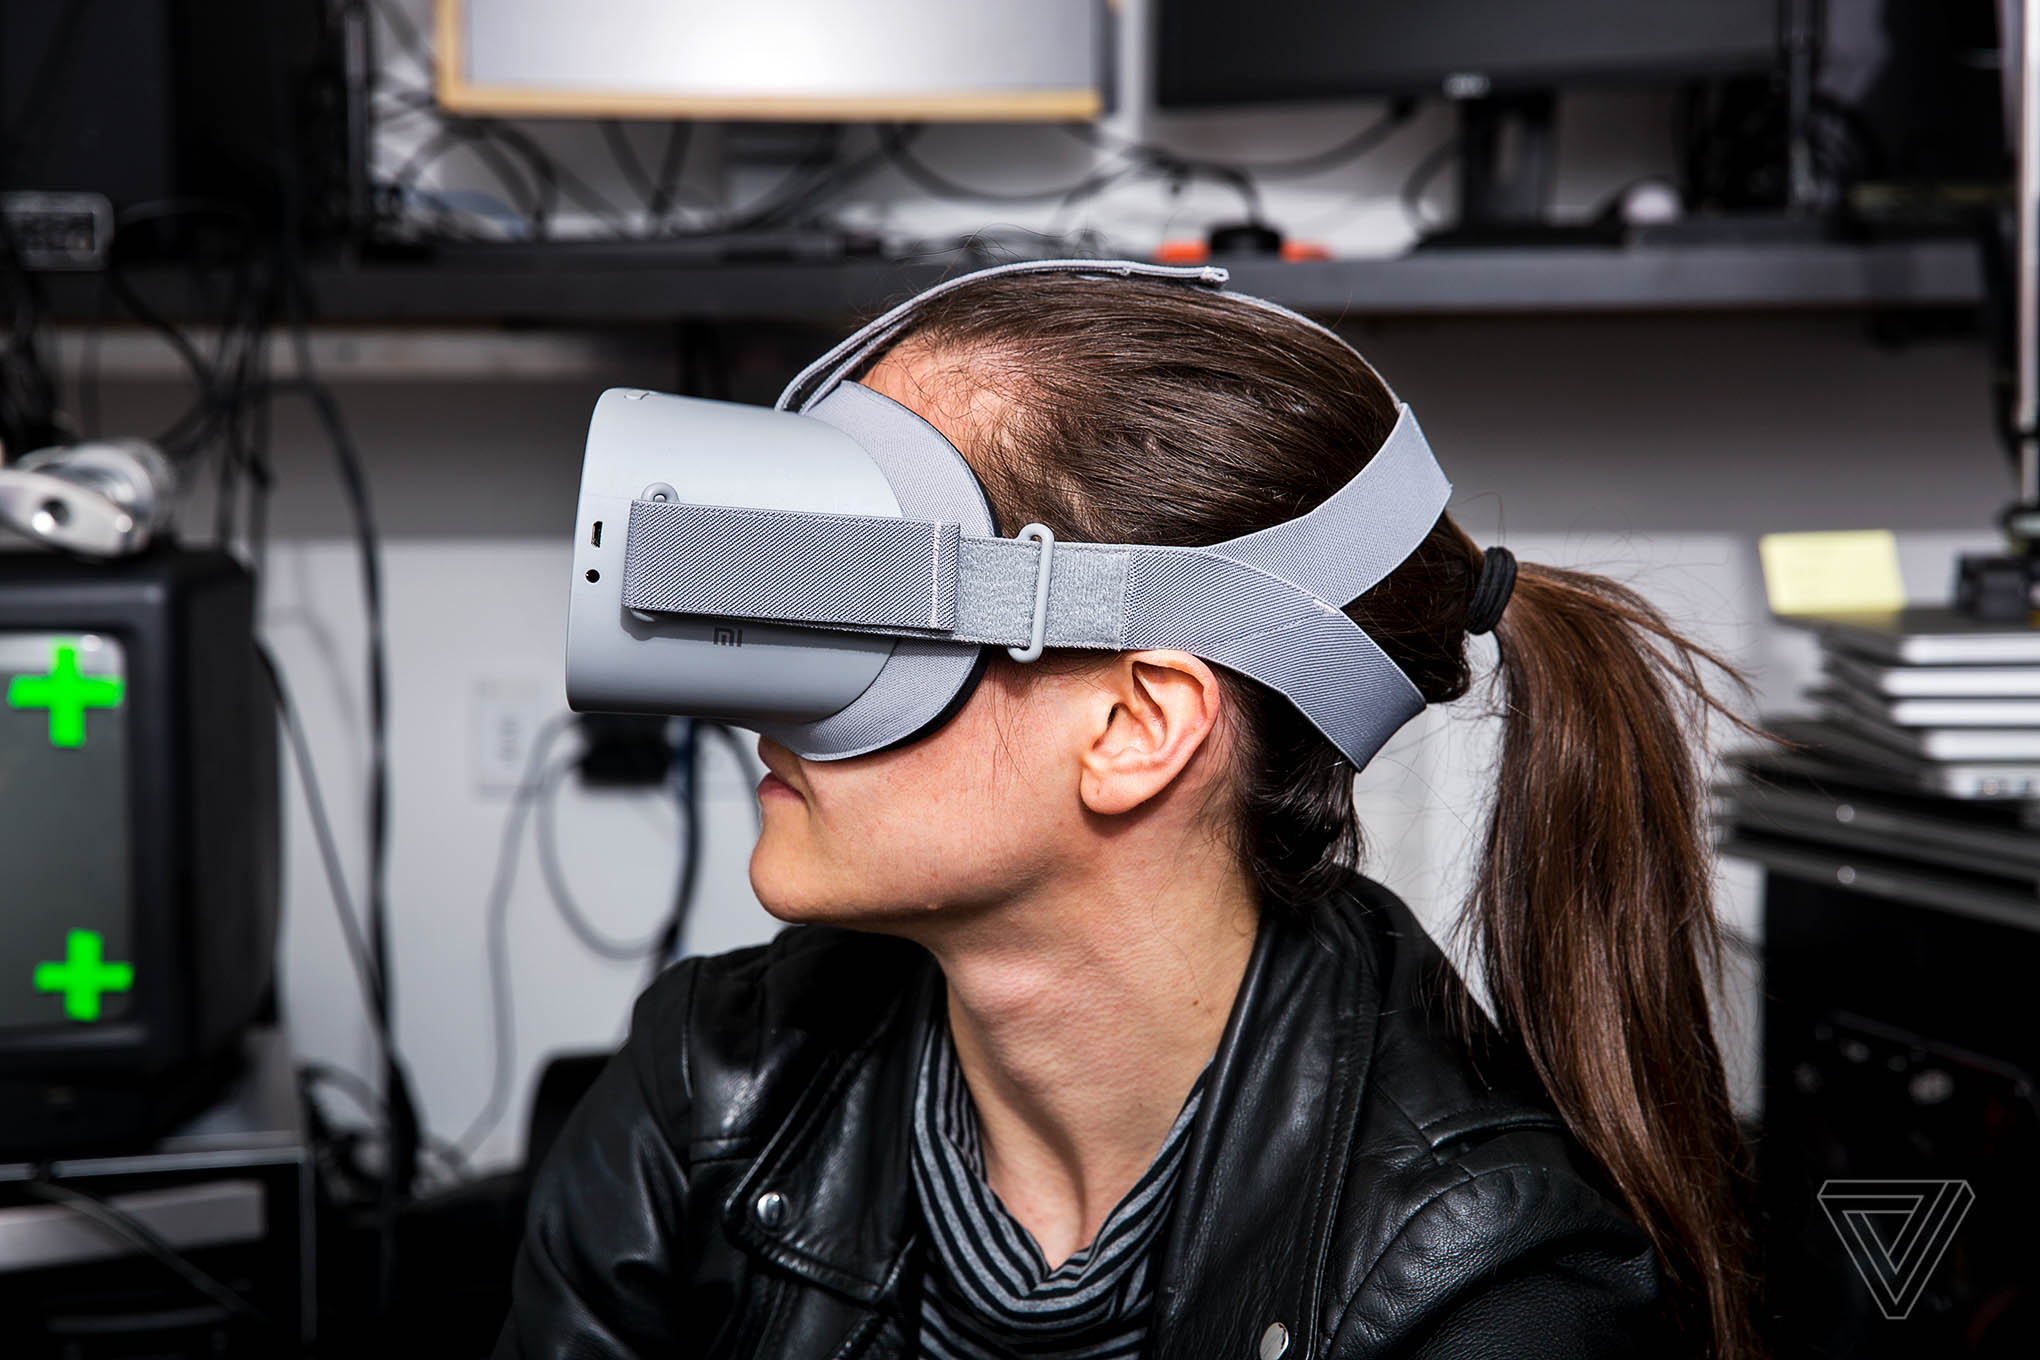 Oculus Go review: mobile VR, minus the phone - The Verge